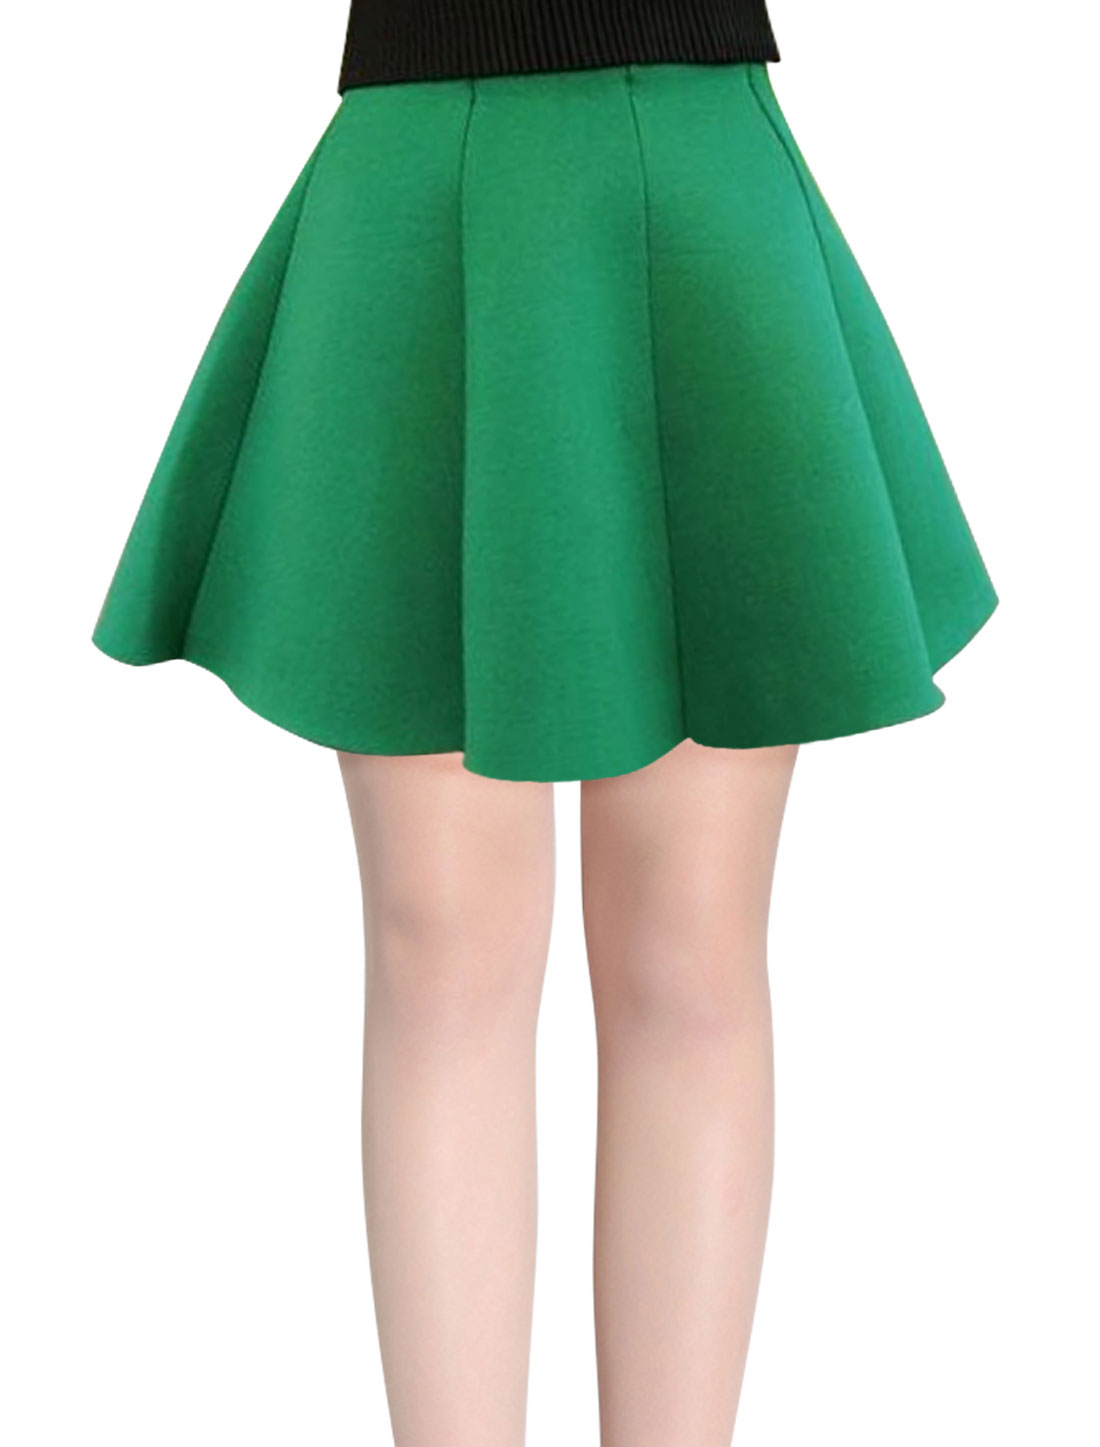 Panel Design Natural Waist Green Full Skirt for Woman XS